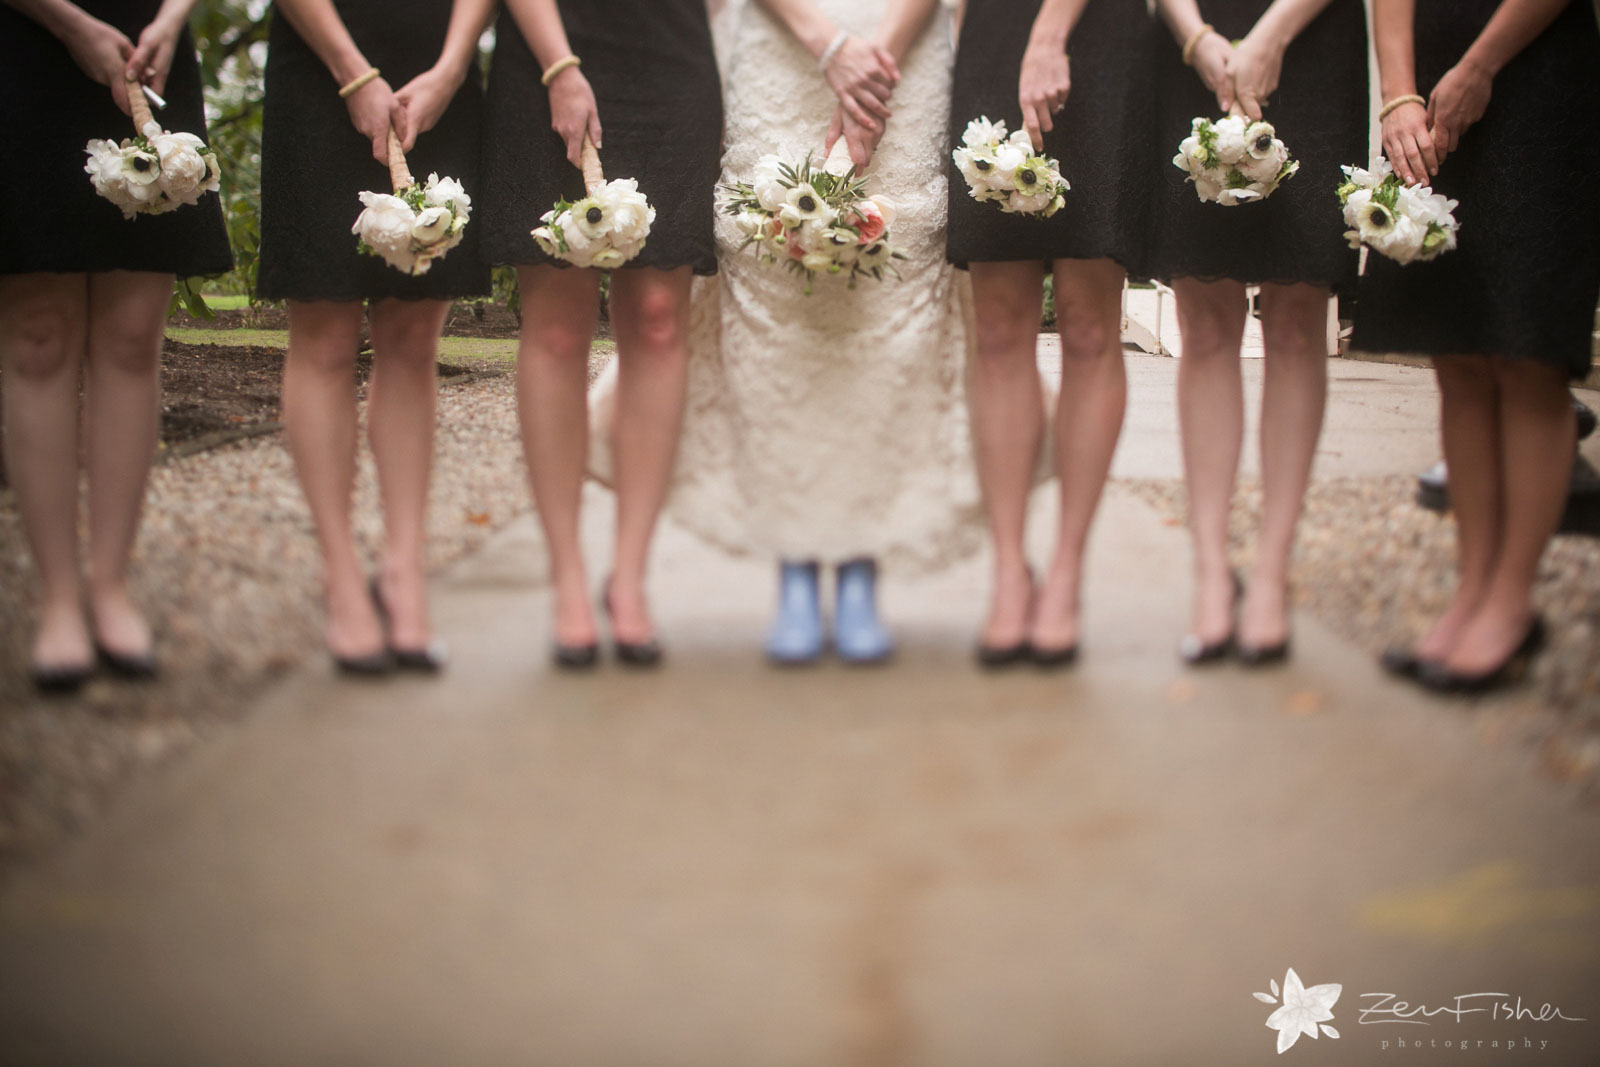 Playful detail of bridesmaids standing in a row, holding bouquets and bride wearing blue galoshes.